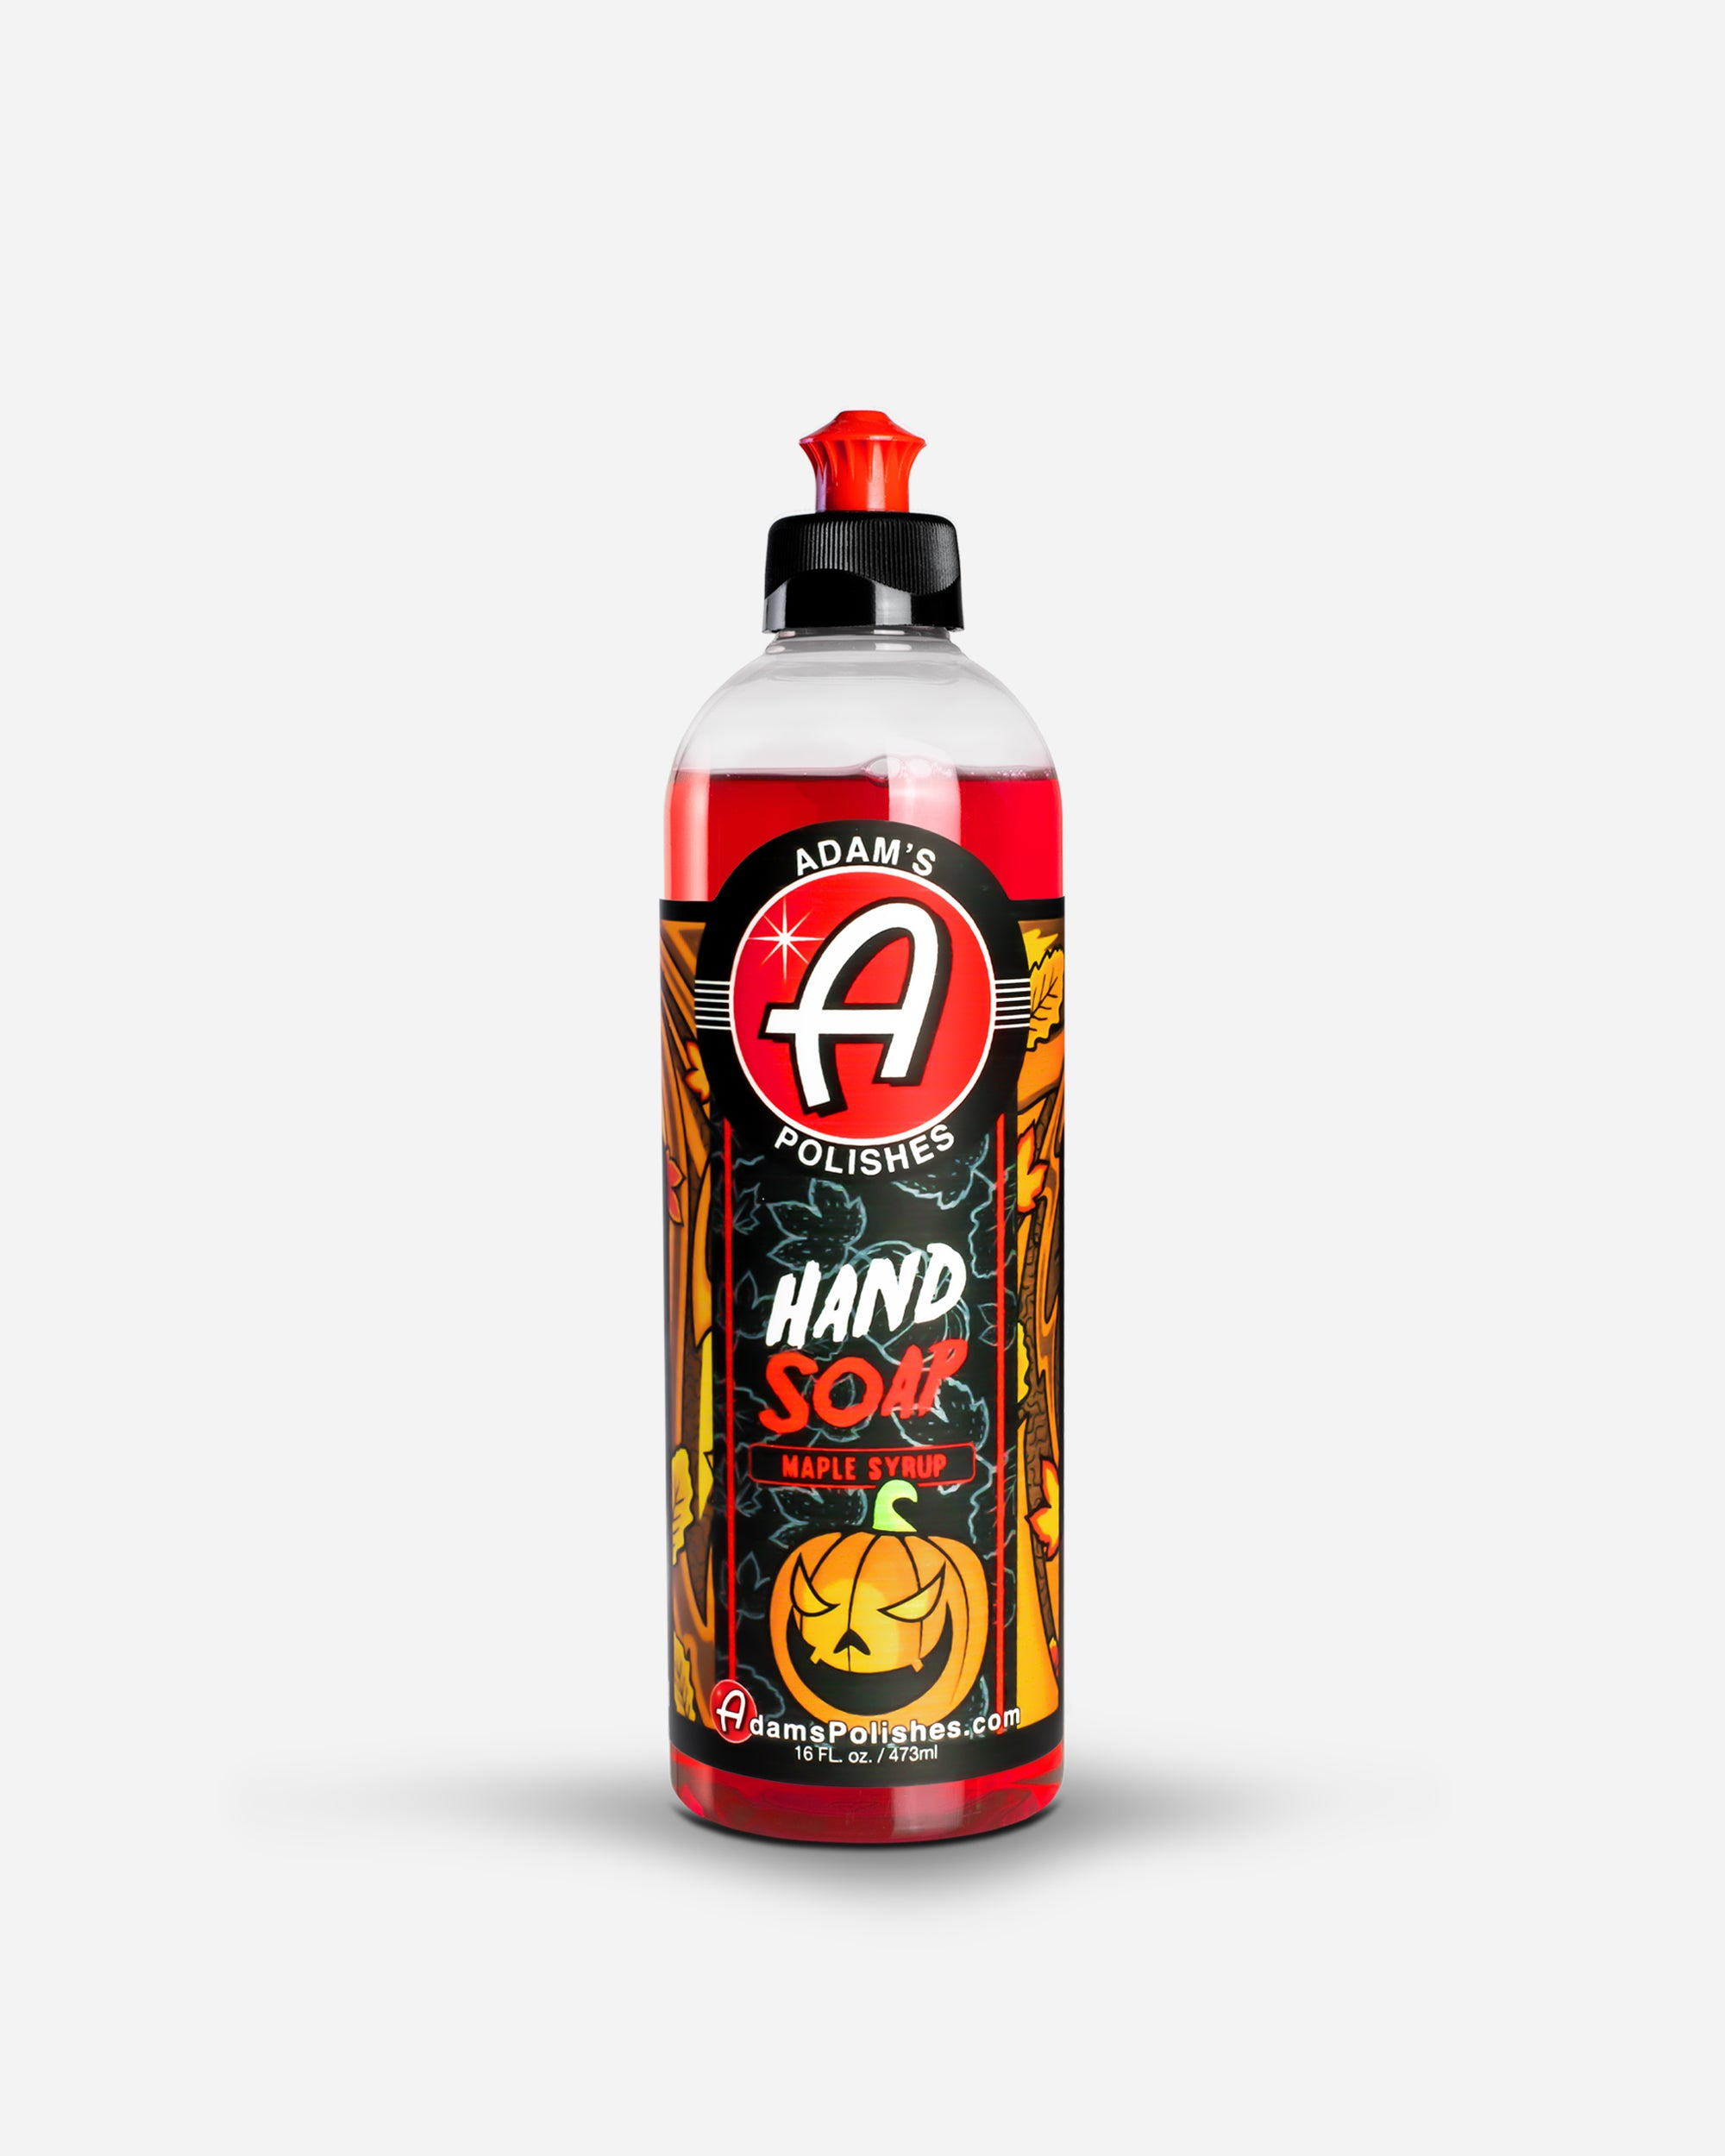 Adam's Maple Syrup Hand Soap